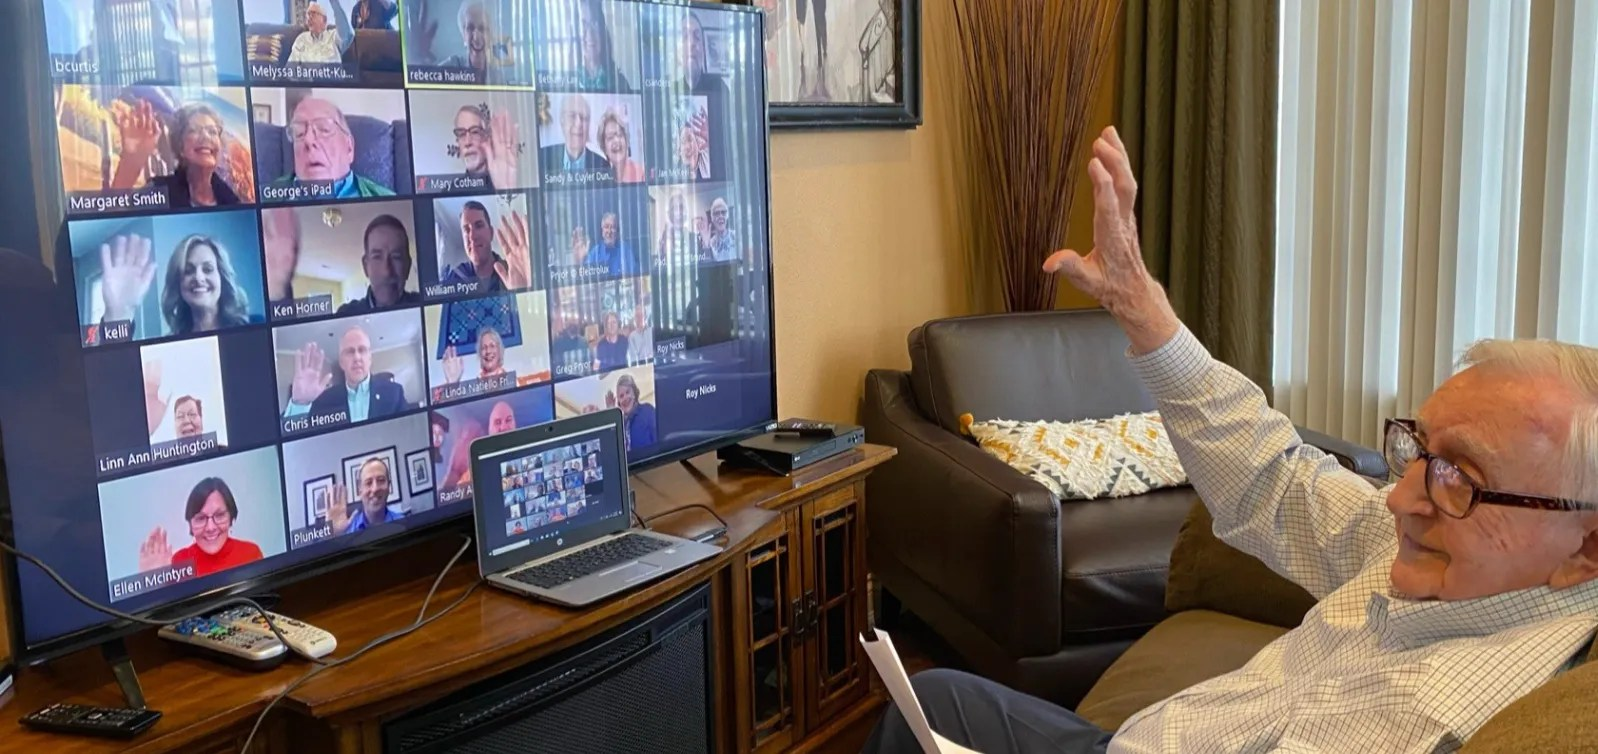 Dr. Harold S. Pryor, the first president of Columbia State Community College, celebrates his 100th birthday with family and friends through a video conference call at The Bridge of Columbia on Oct. 3, 2020.